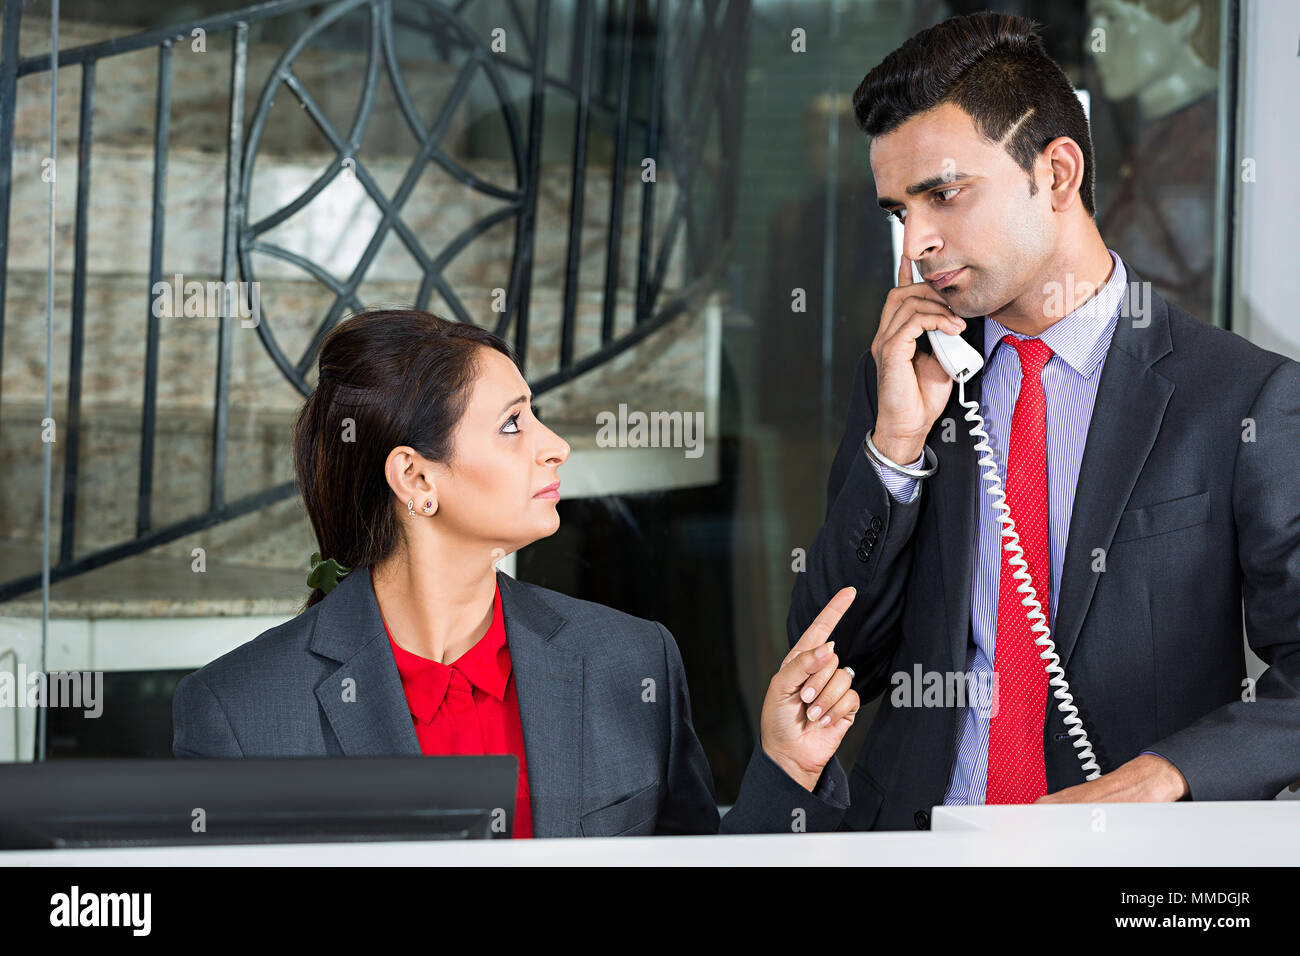 Two Receptionist Colleagues Employee Counter Talking Telephone Enquiry Hotel Reception - Stock Image